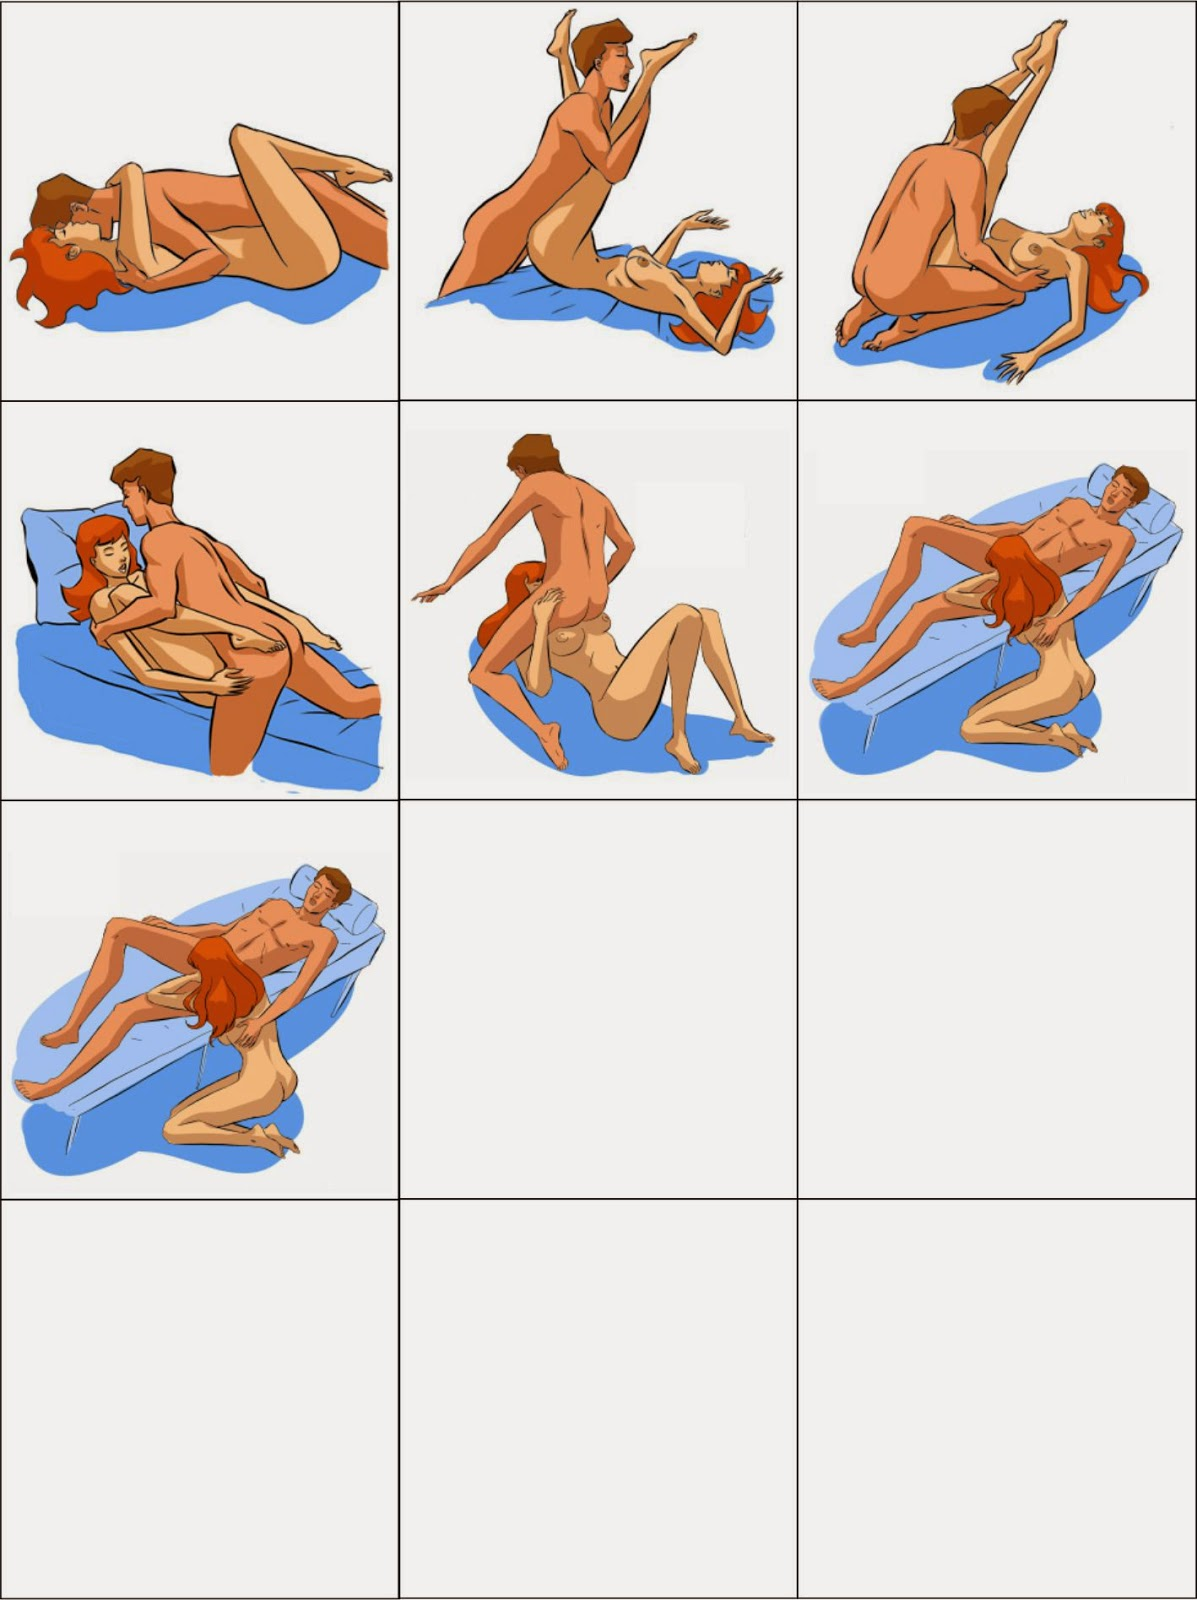 video erotci carte da gioco erotiche